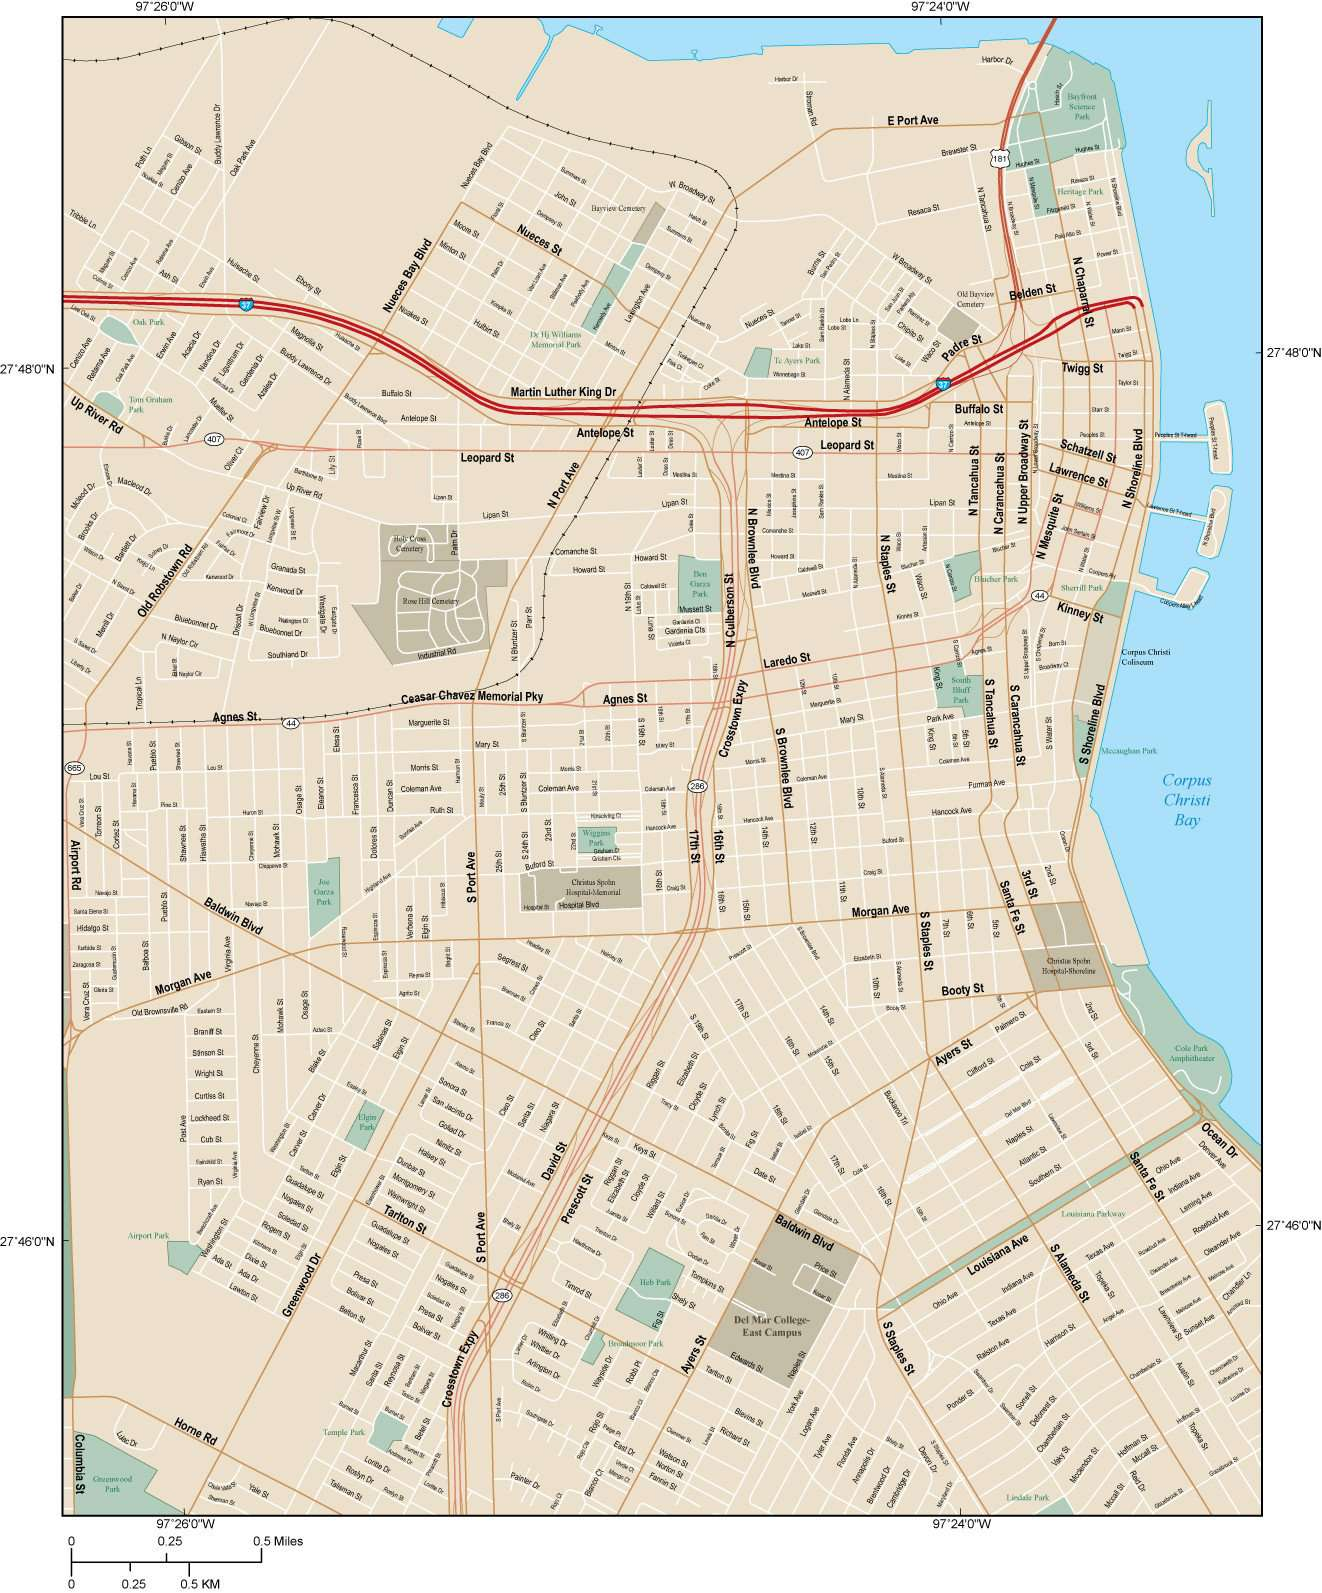 Corpus Christi Map Of Texas.Corpus Christi Tx Map City Center 12 Square Miles With All Local Streets